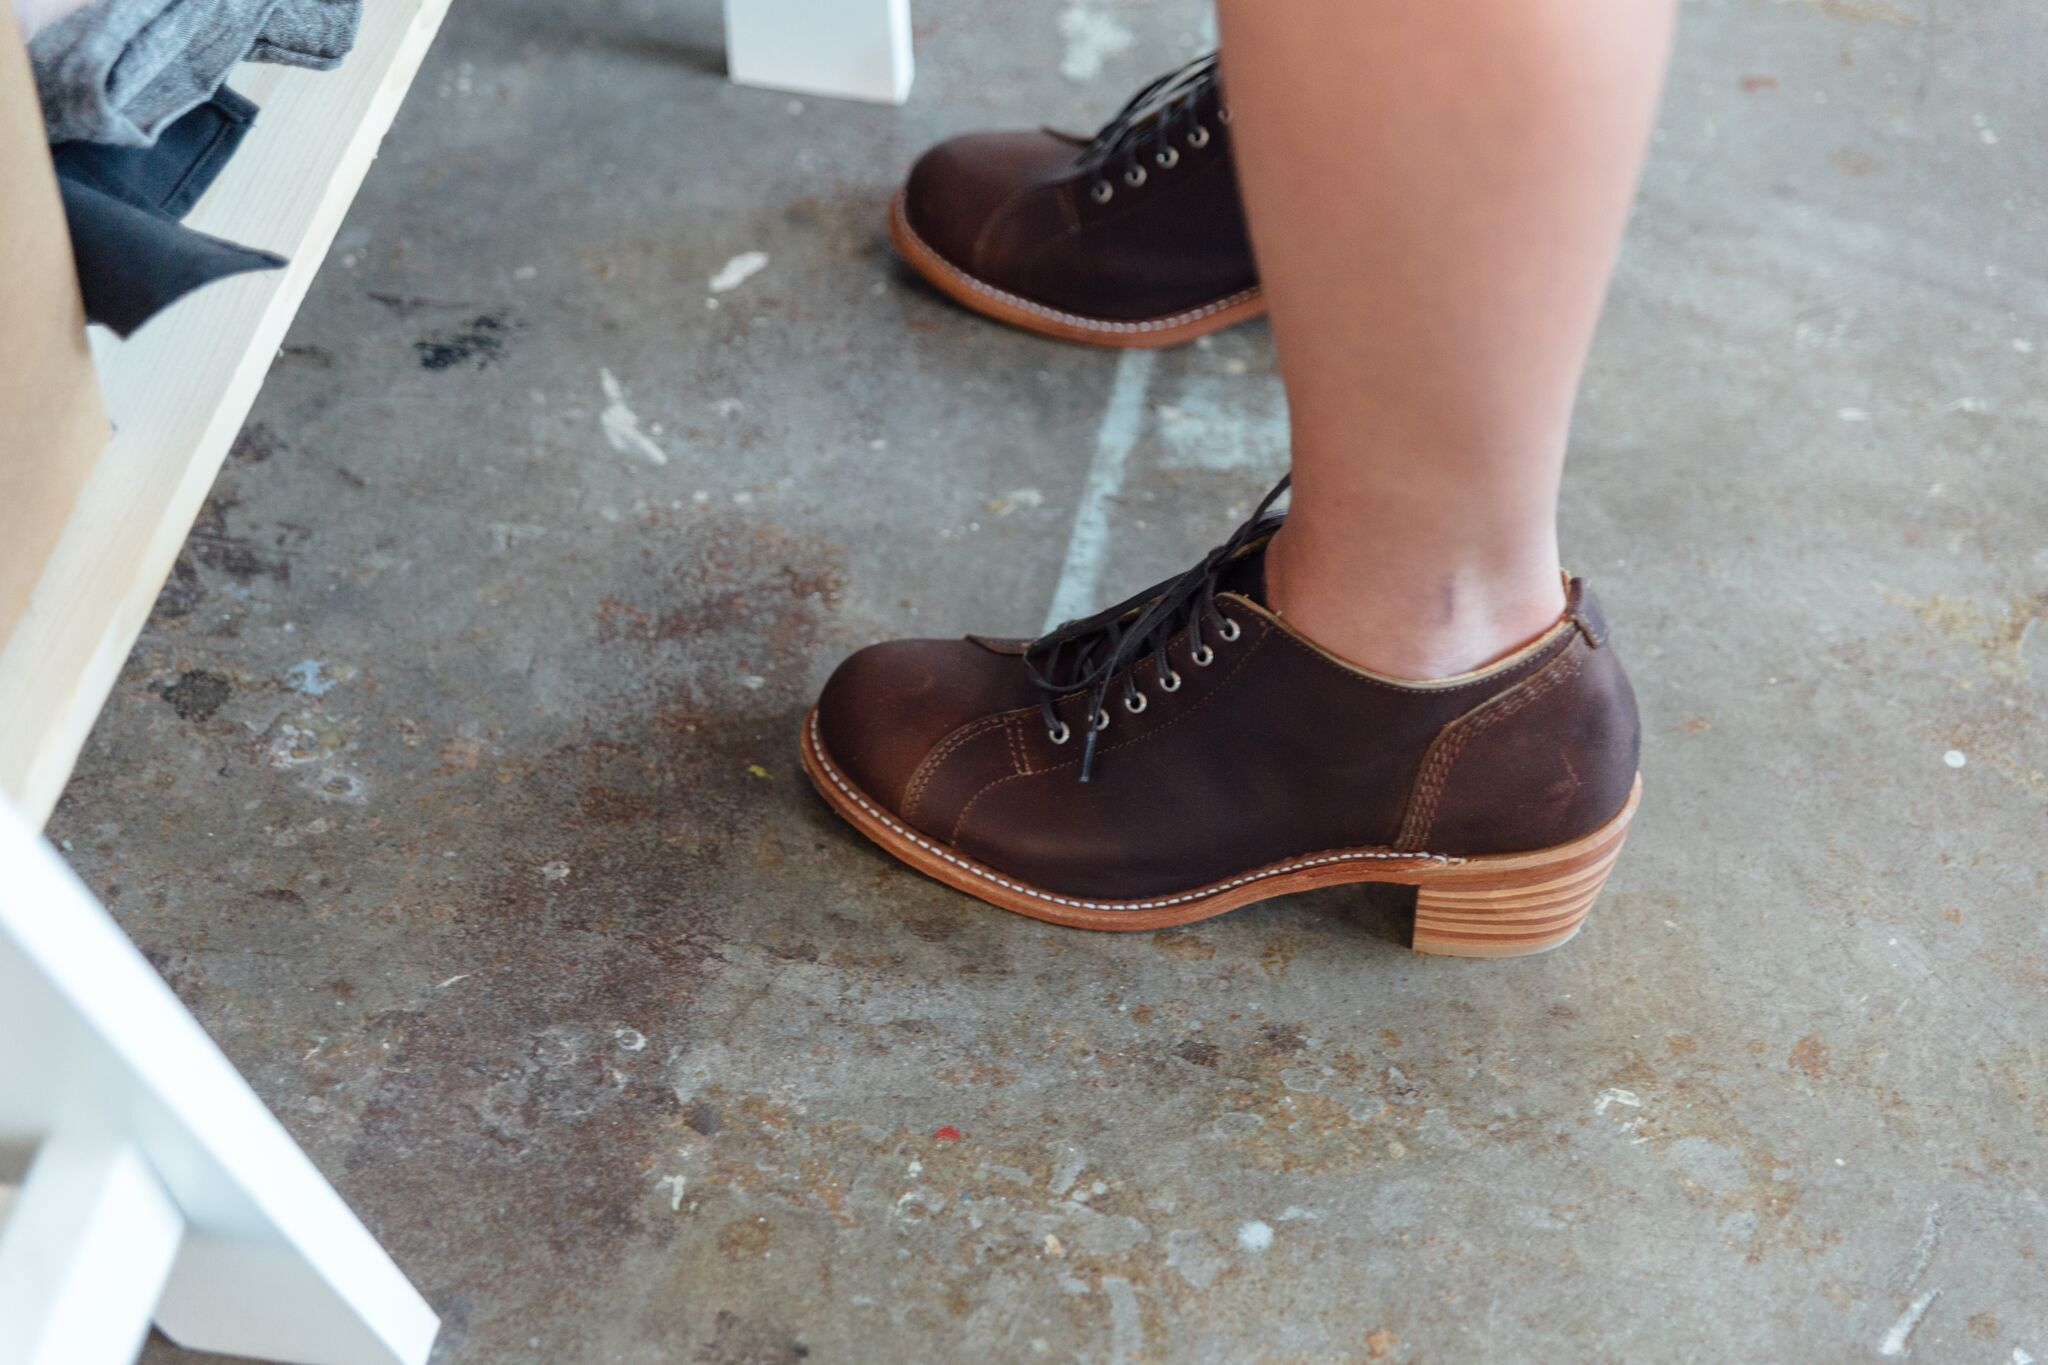 62affa84c7b The Faye | My style | Red wing boots, Red wing shoes, Fashion boots